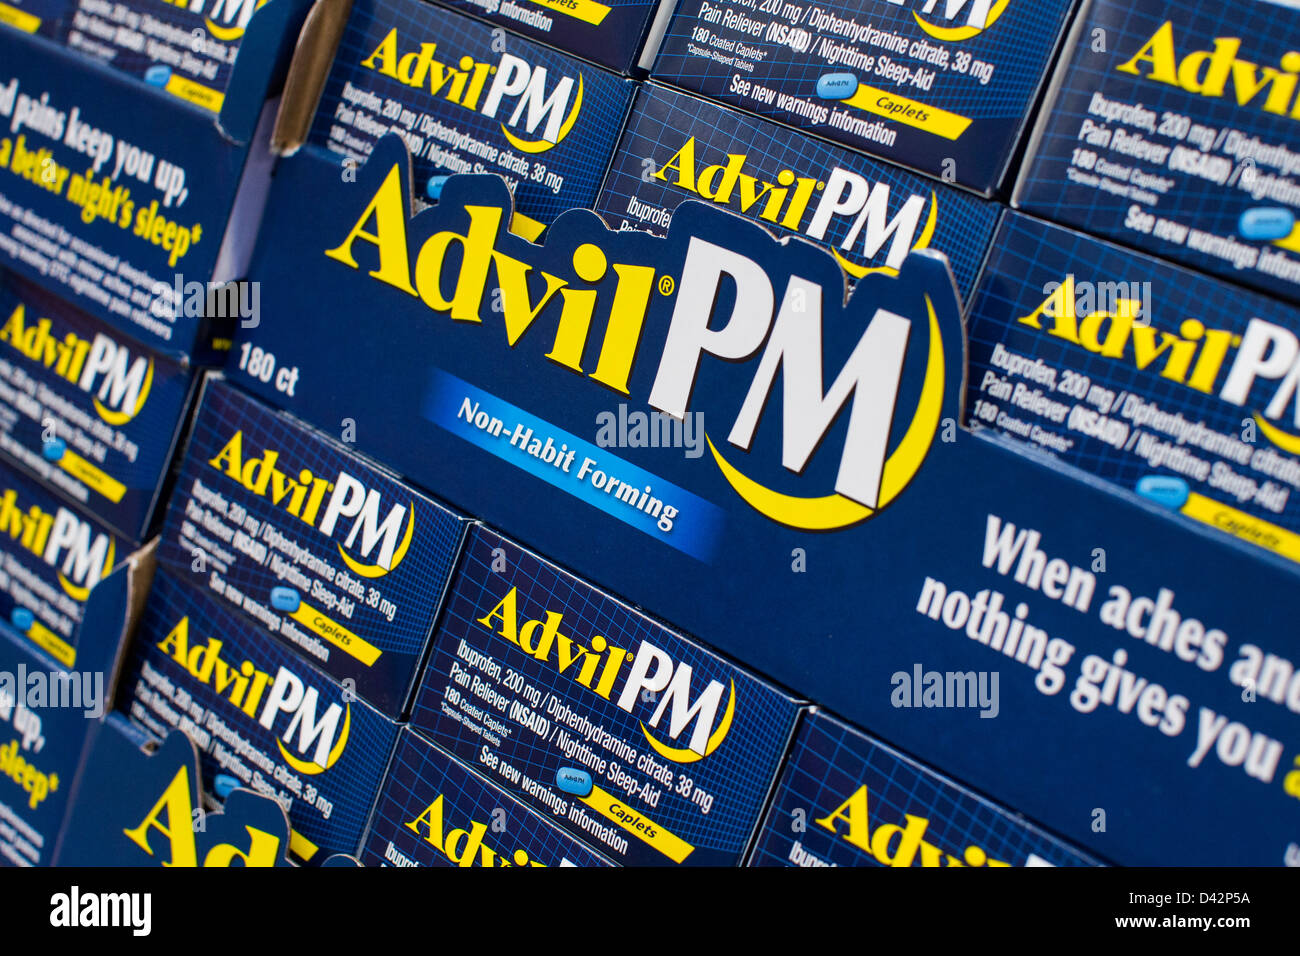 Advil pm on display at a costco wholesale warehouse club stock photo advil pm on display at a costco wholesale warehouse club stock photo 54151030 alamy thecheapjerseys Images